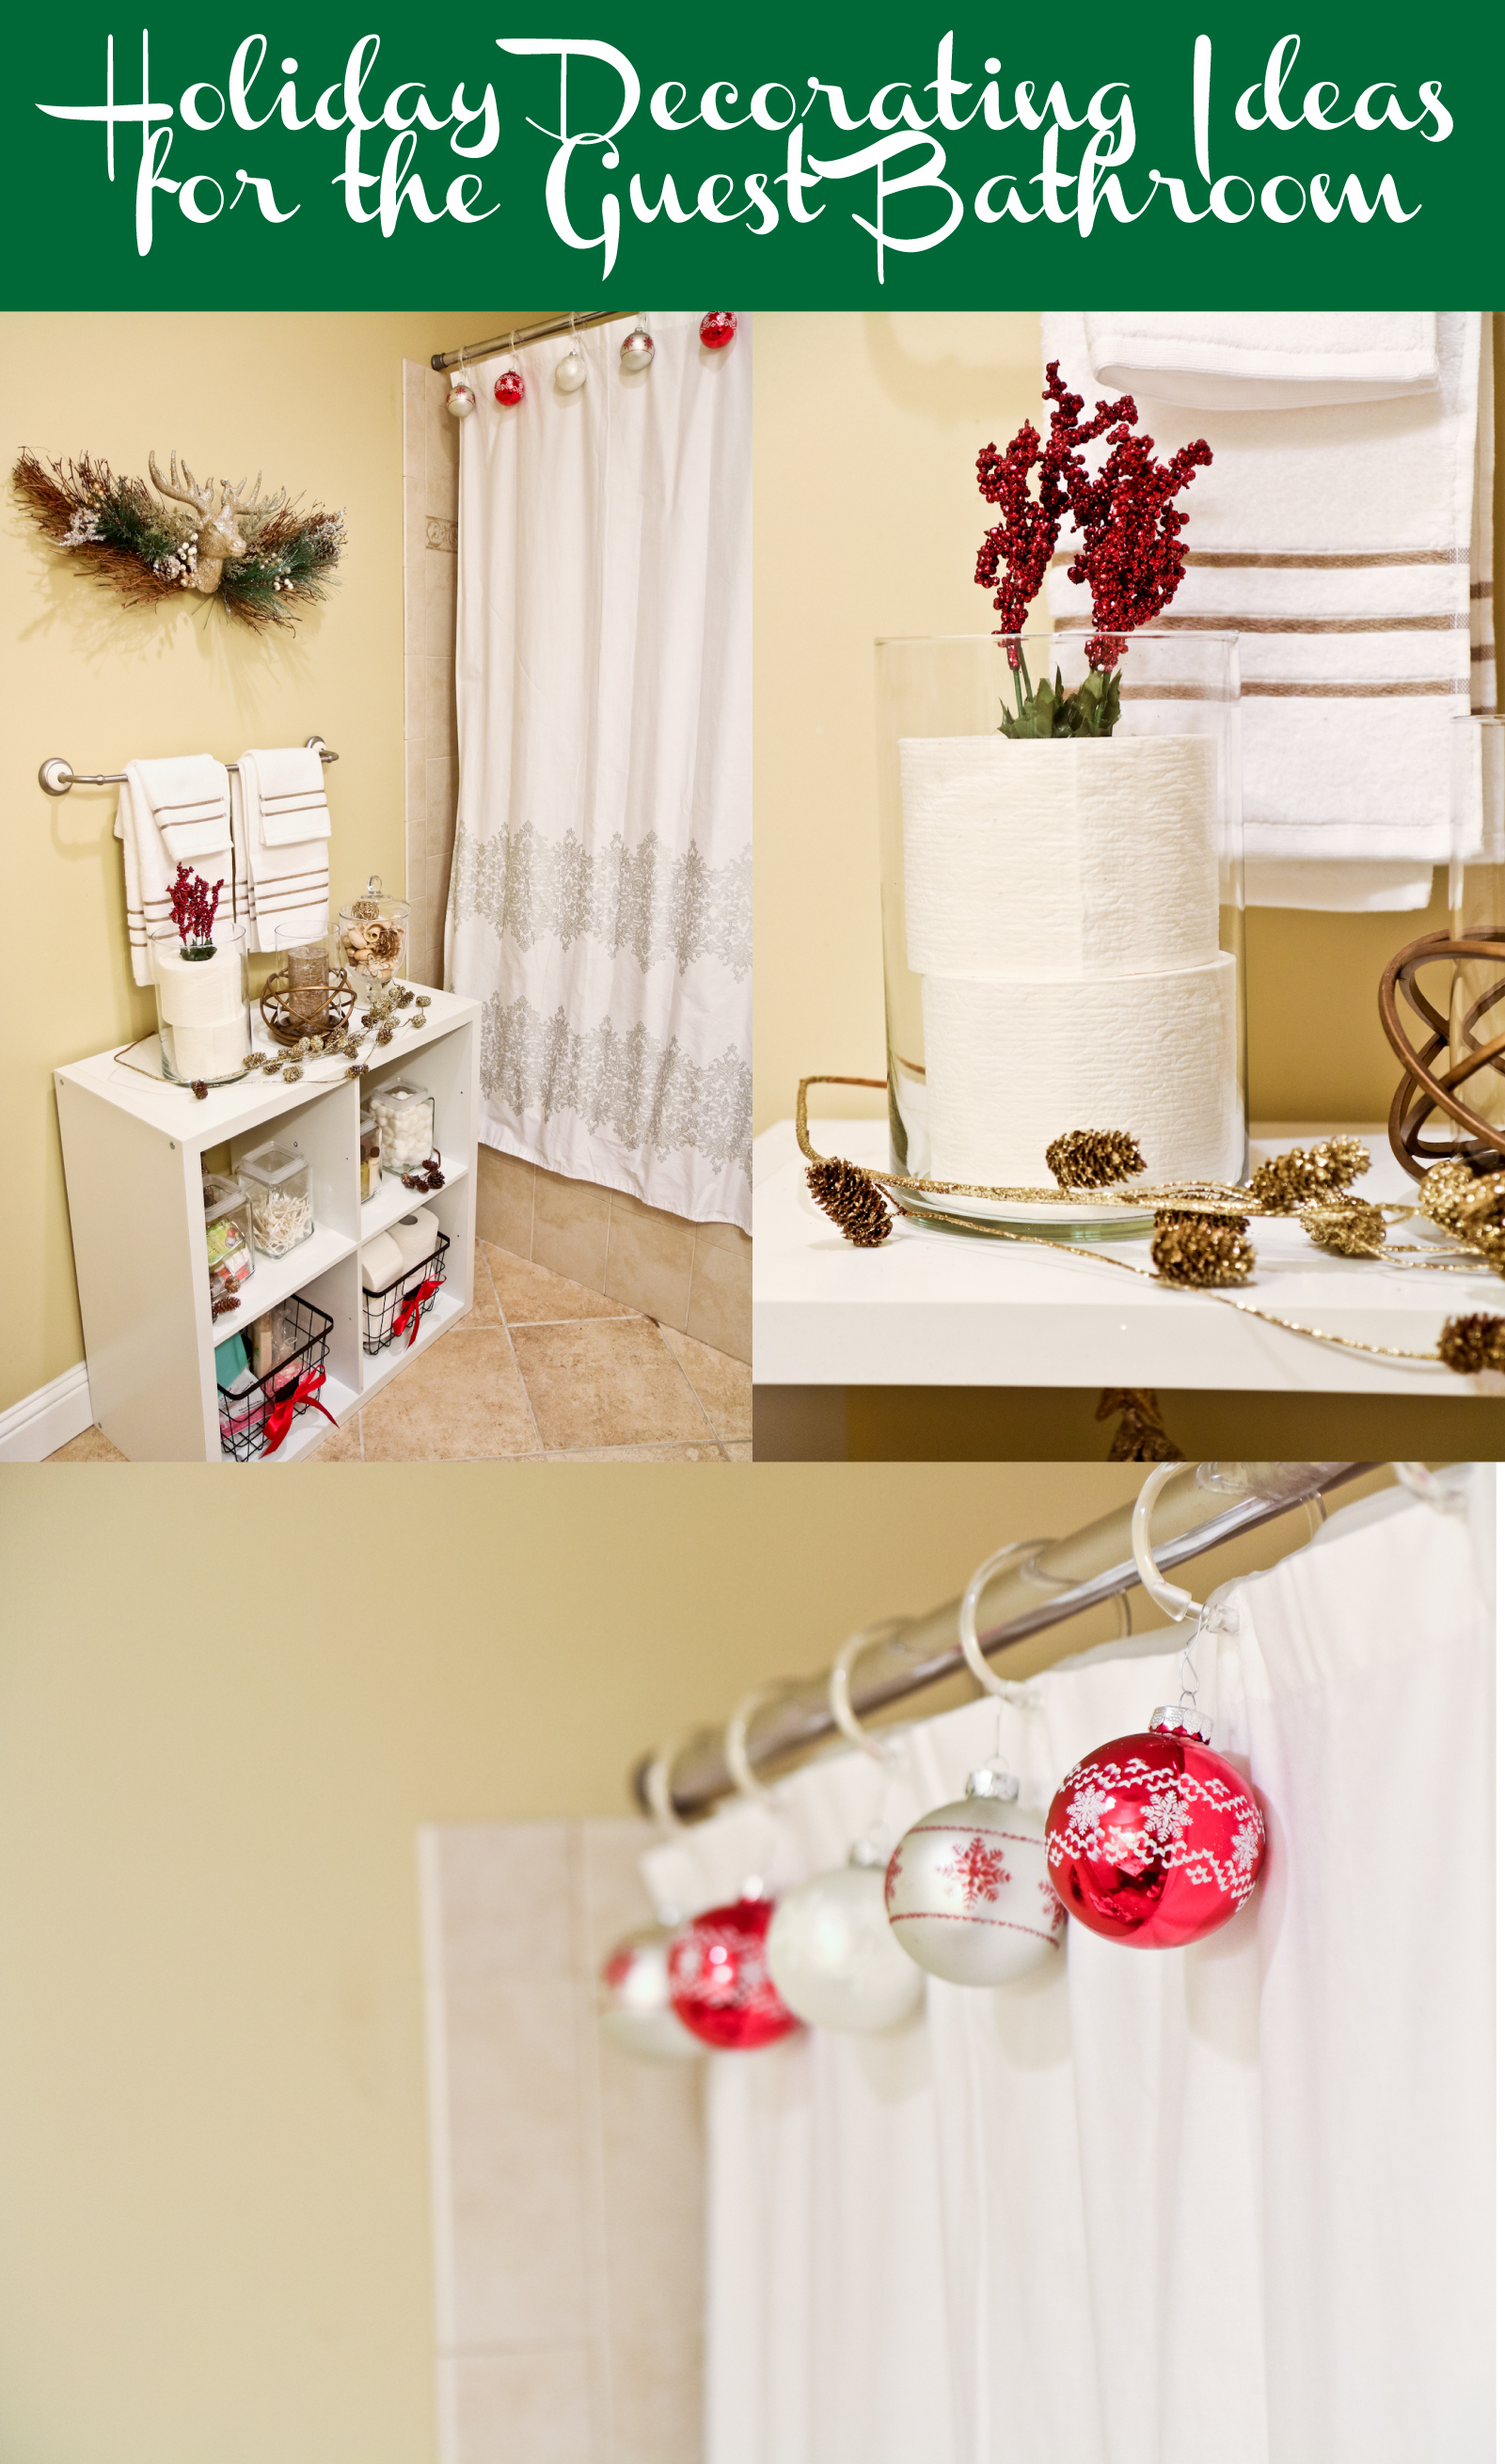 Holiday-Decorating-Ideas-for-the-Guest-Bathroom